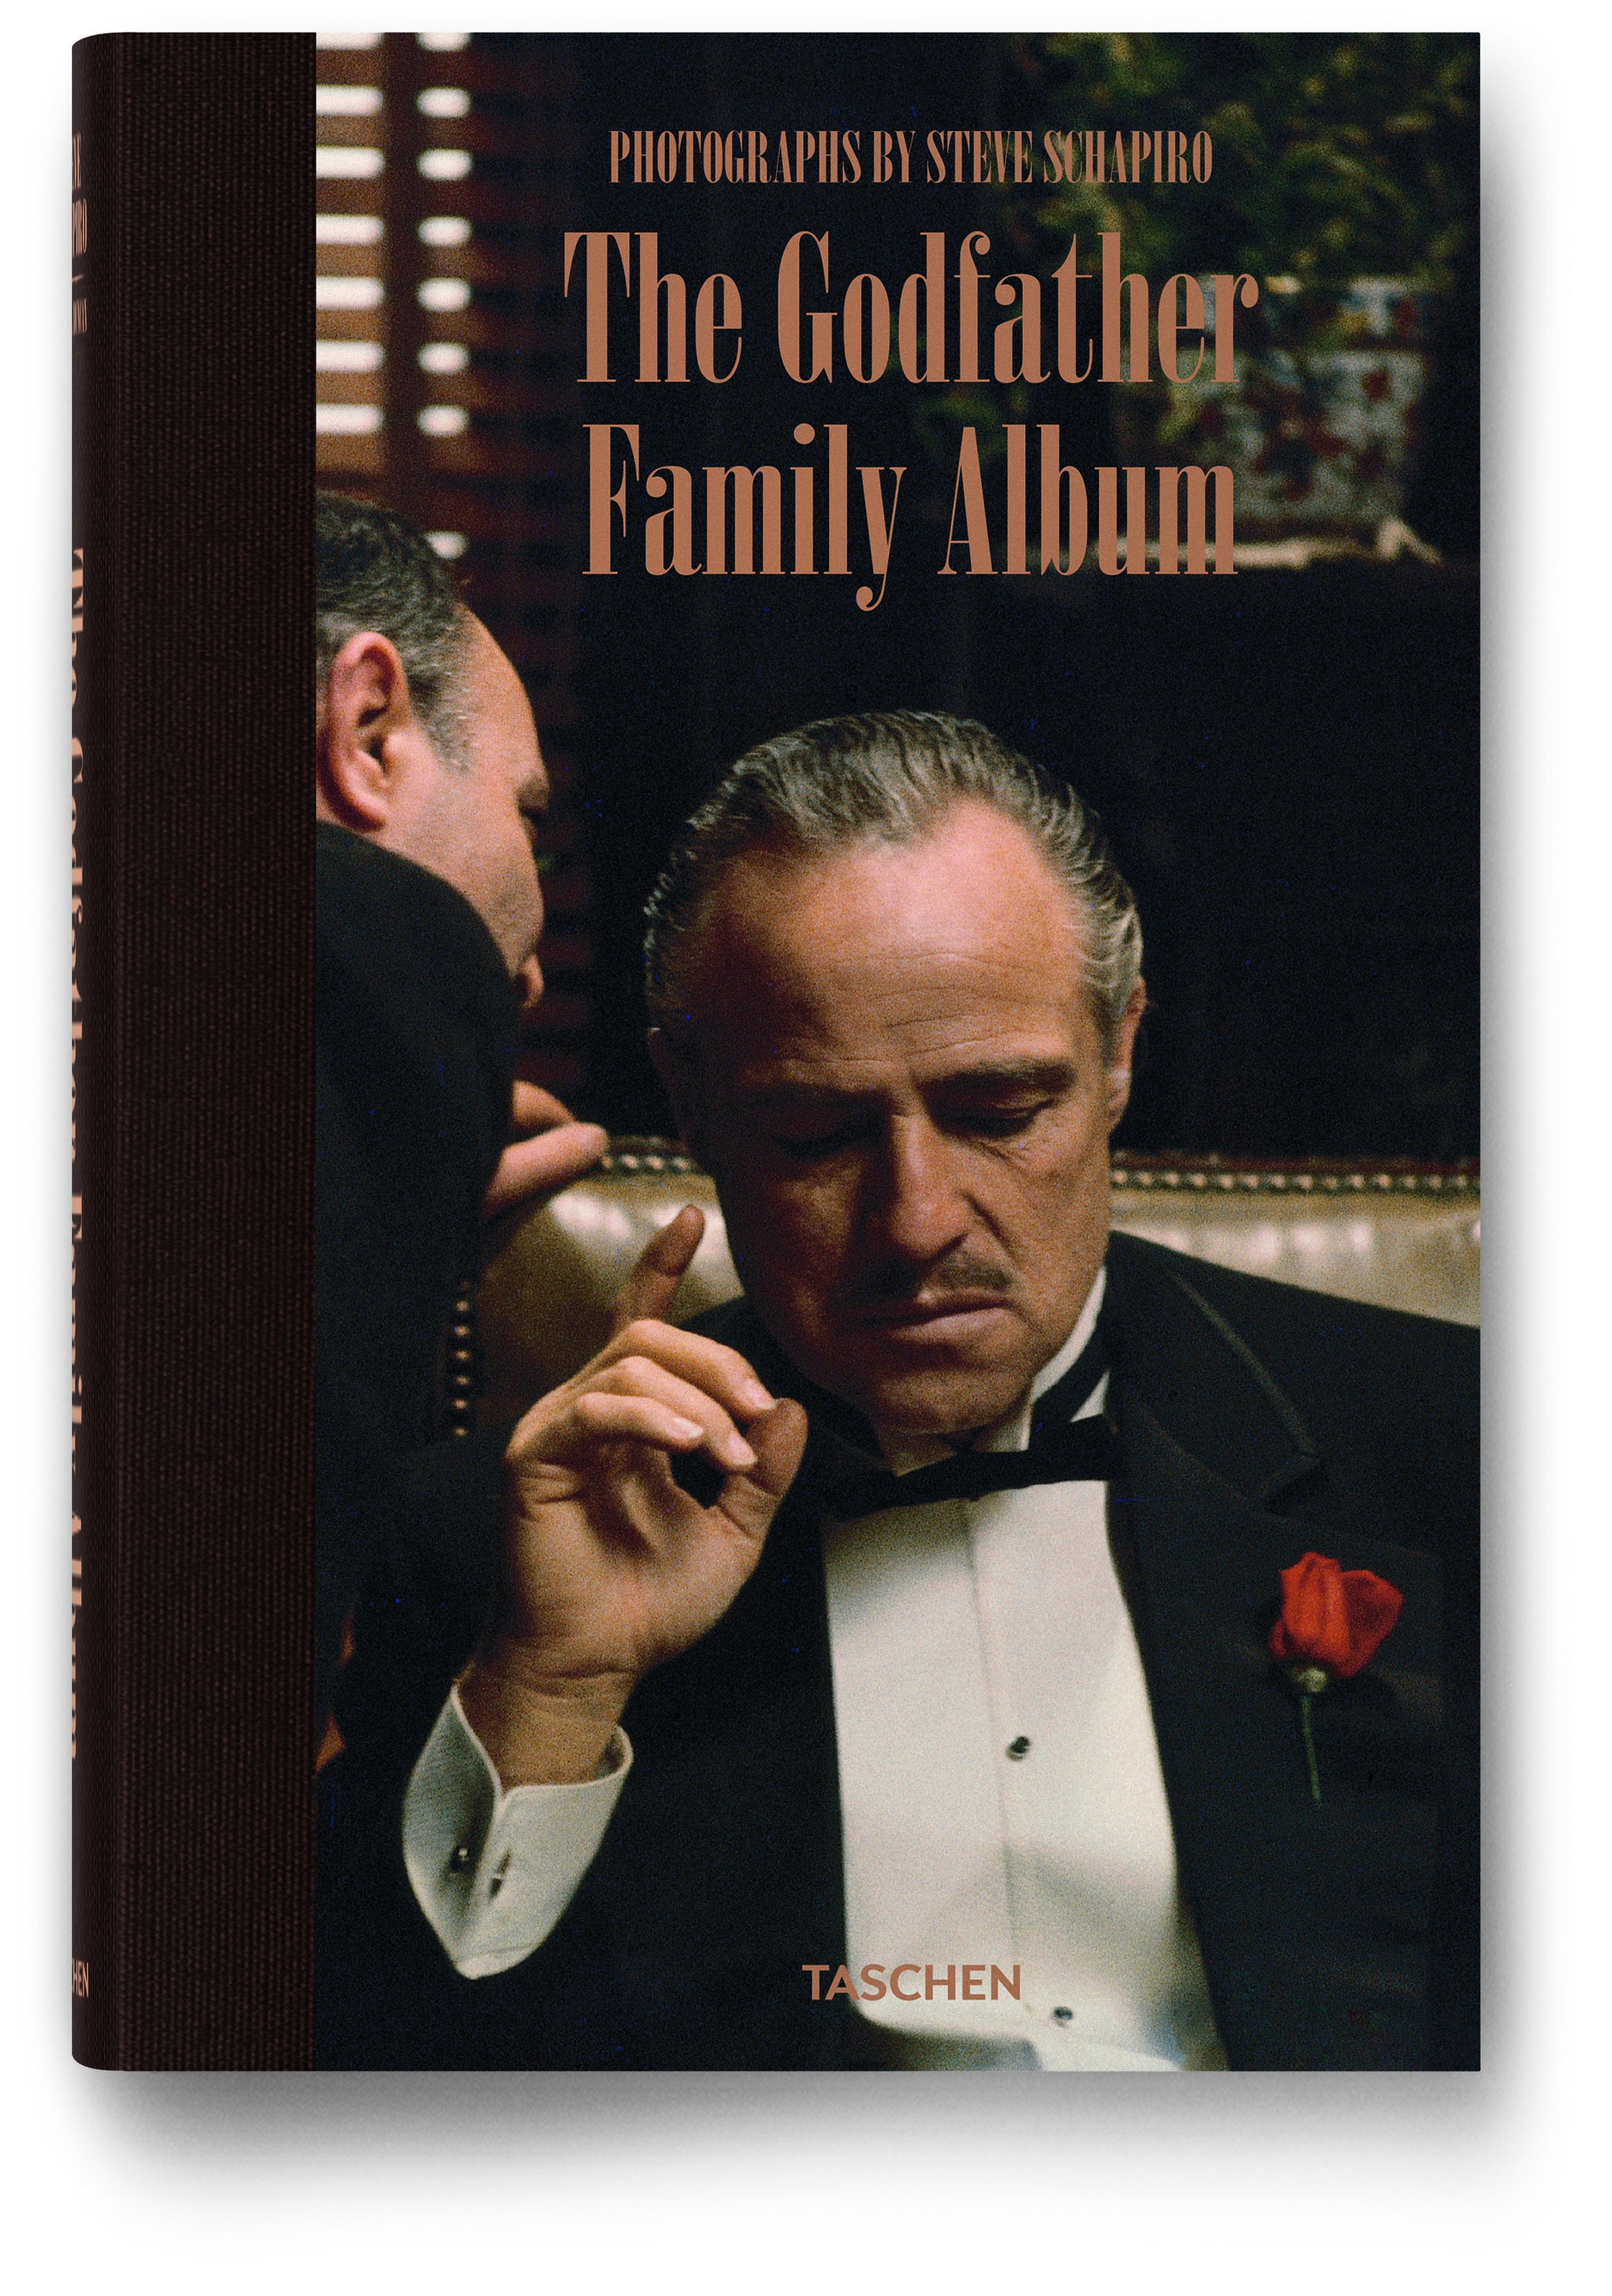 An analysis of michael corleones wedding in the godfather by mario puzo